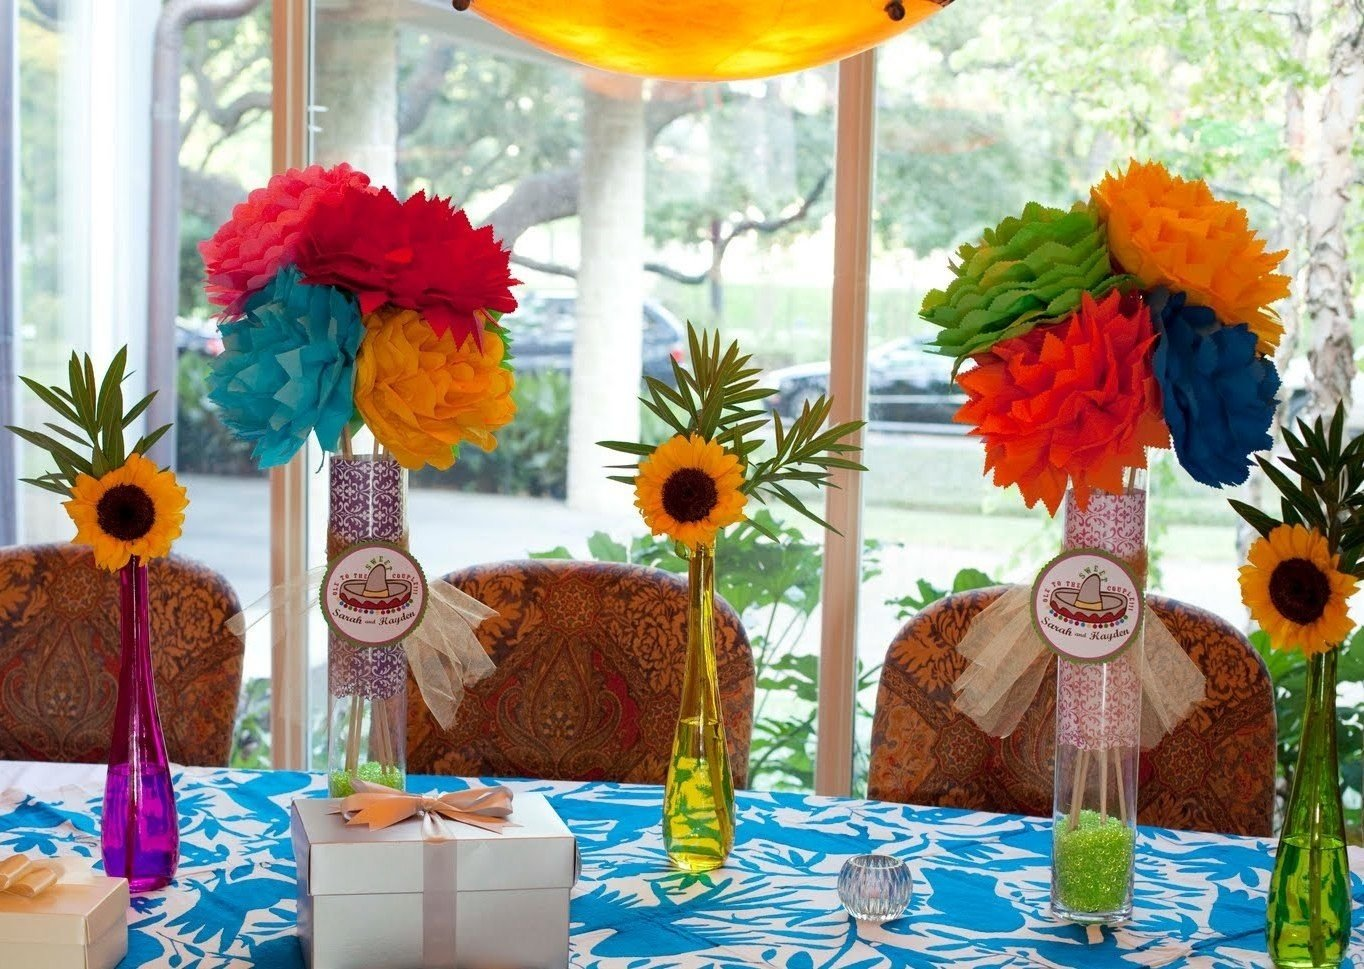 10 Unique Fiesta Party Ideas For Adults party craft ideas for adults craft ideas on dining 2020